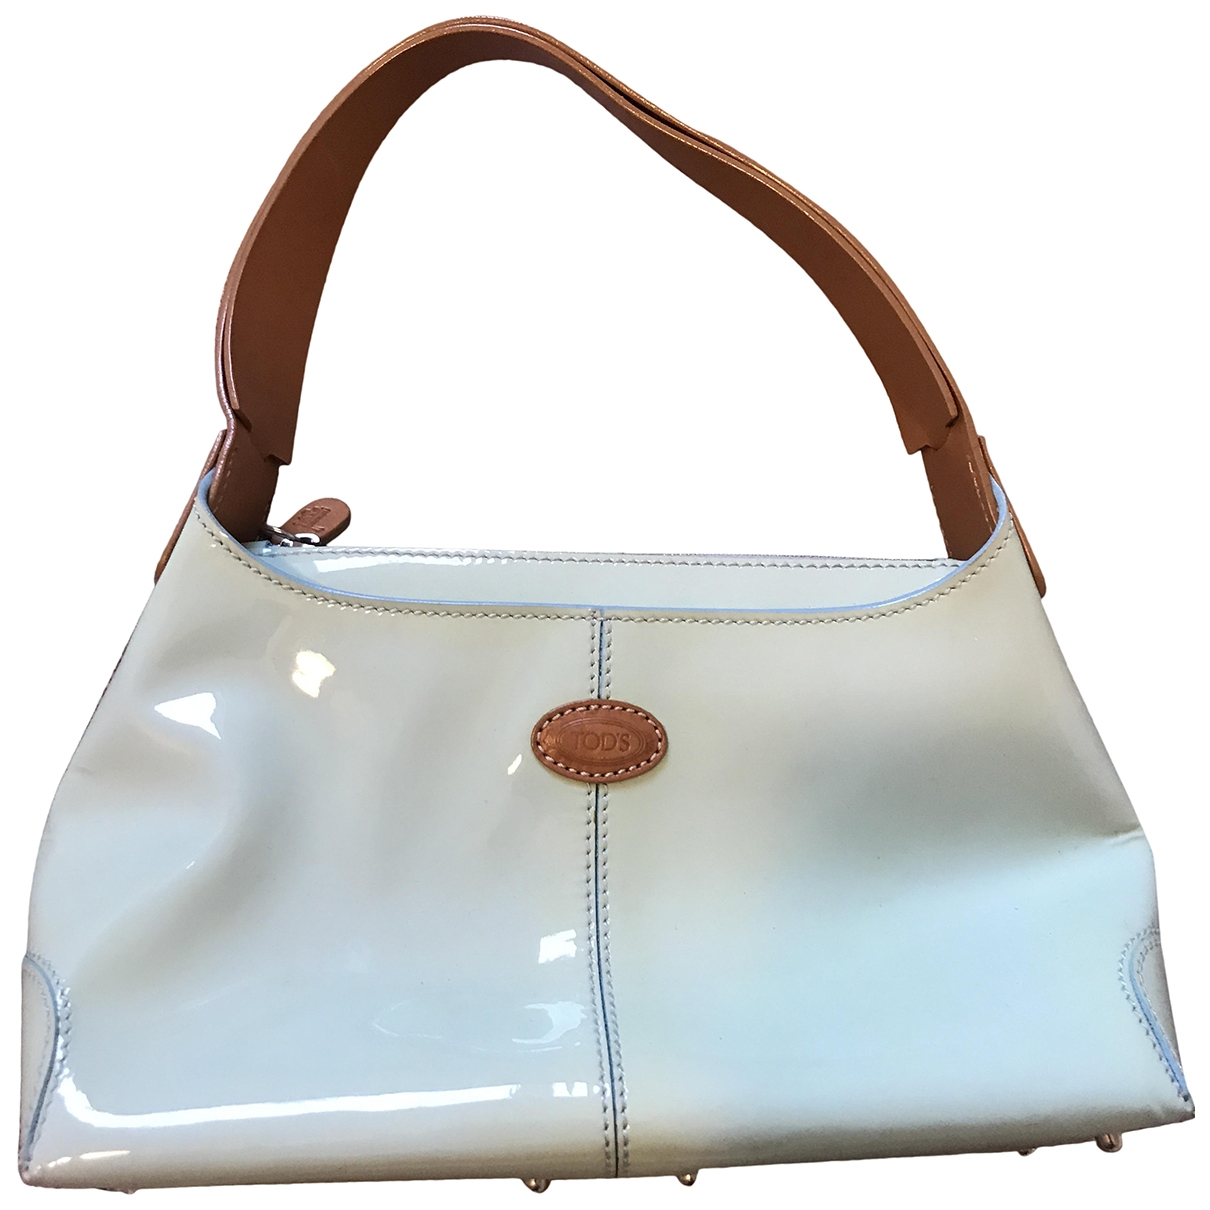 Tod's \N Turquoise Patent leather Clutch bag for Women \N